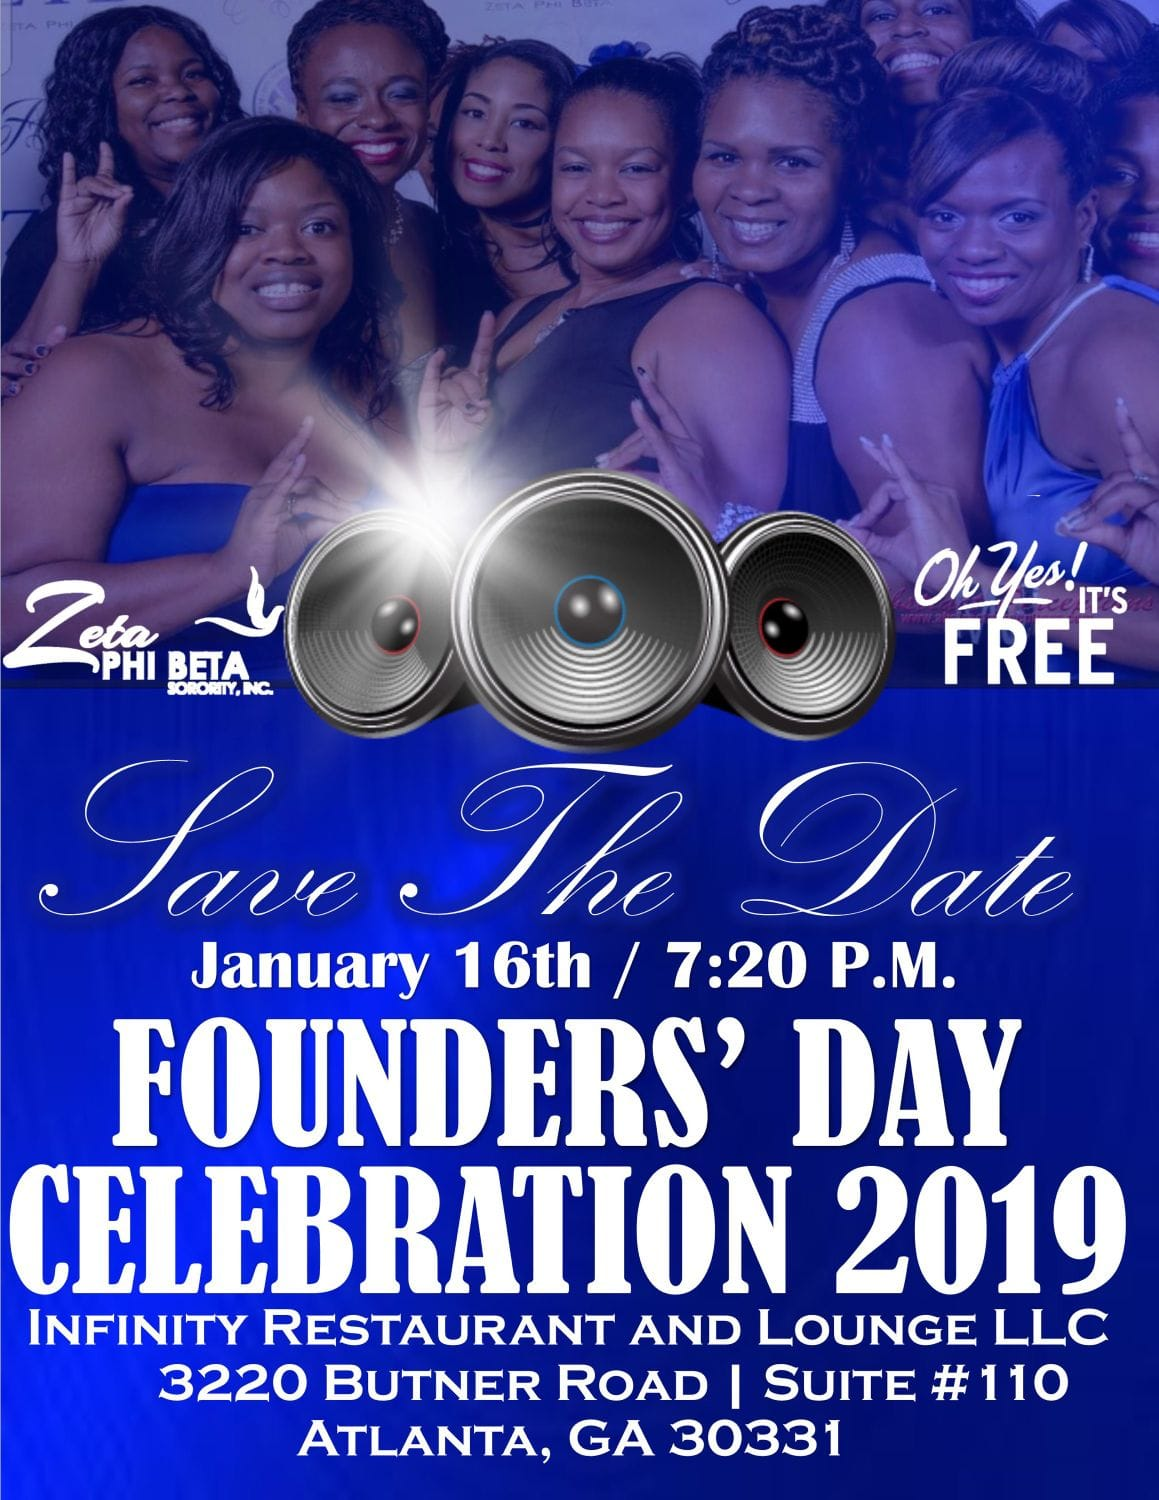 2019 Founders' Day Celebration